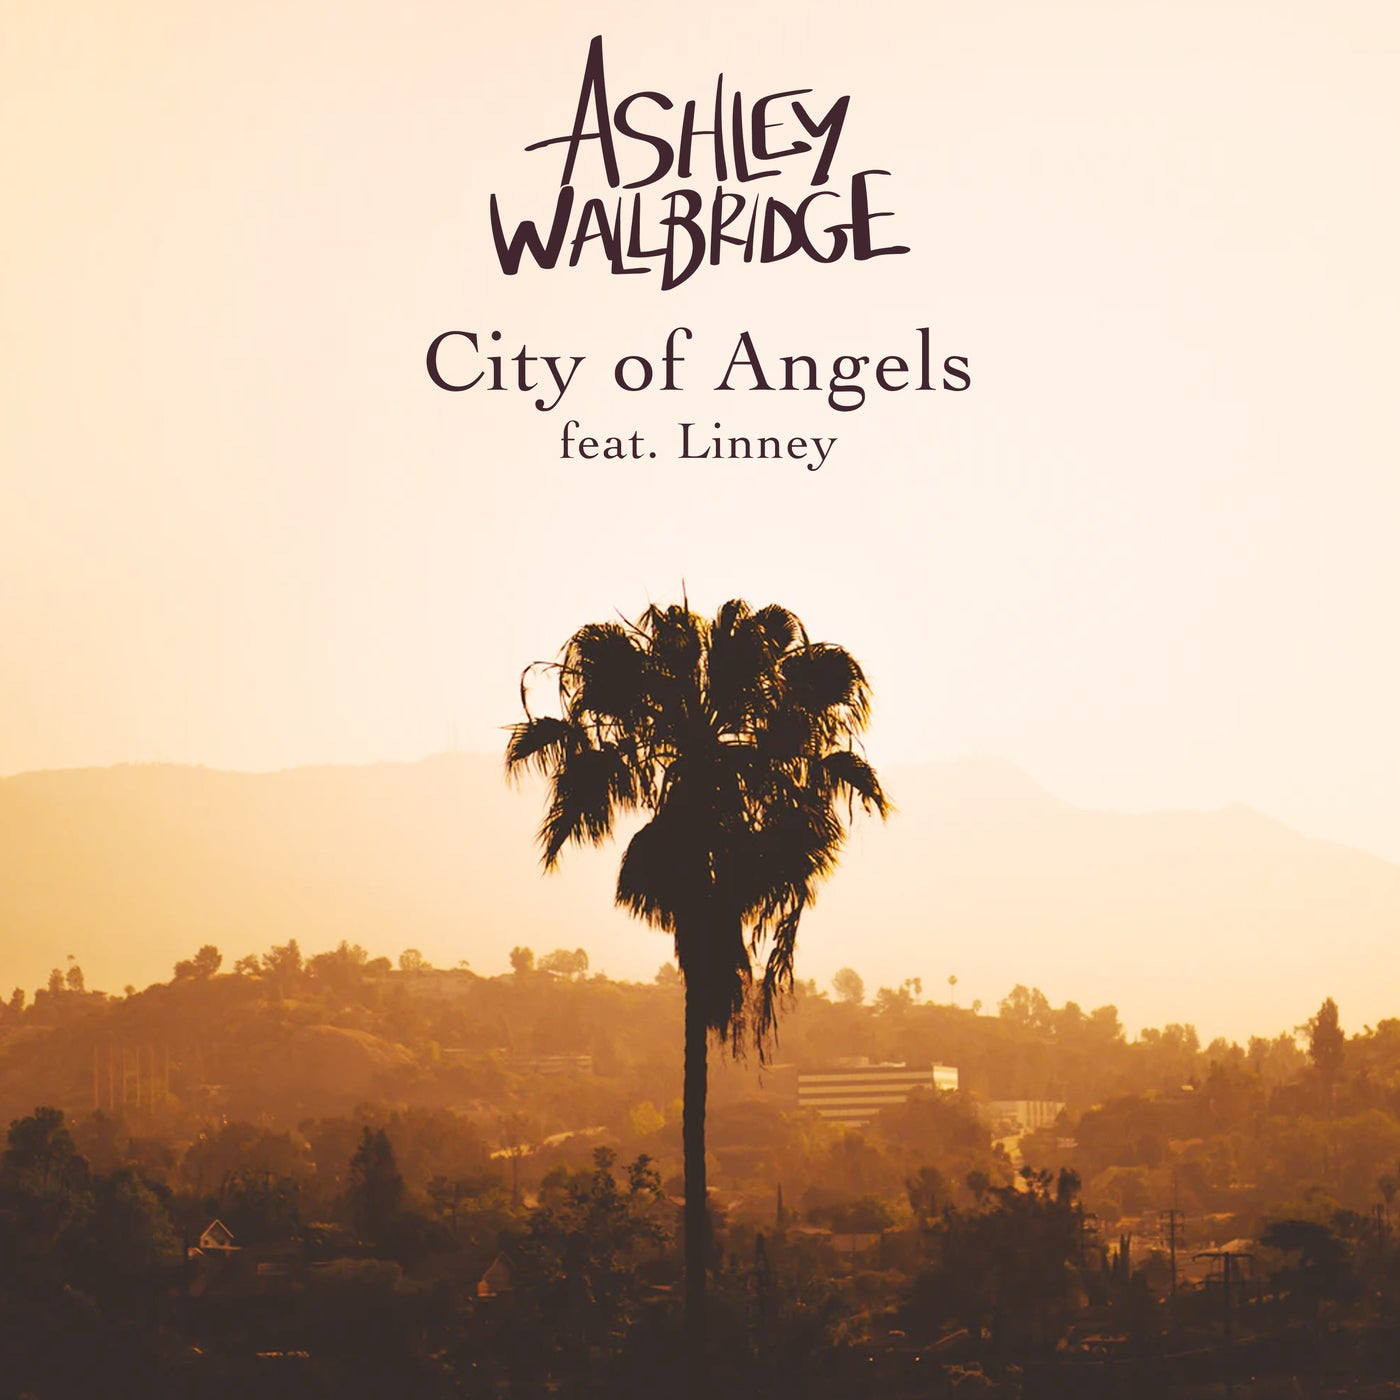 City of Angels feat. Linney (Extended Mix)